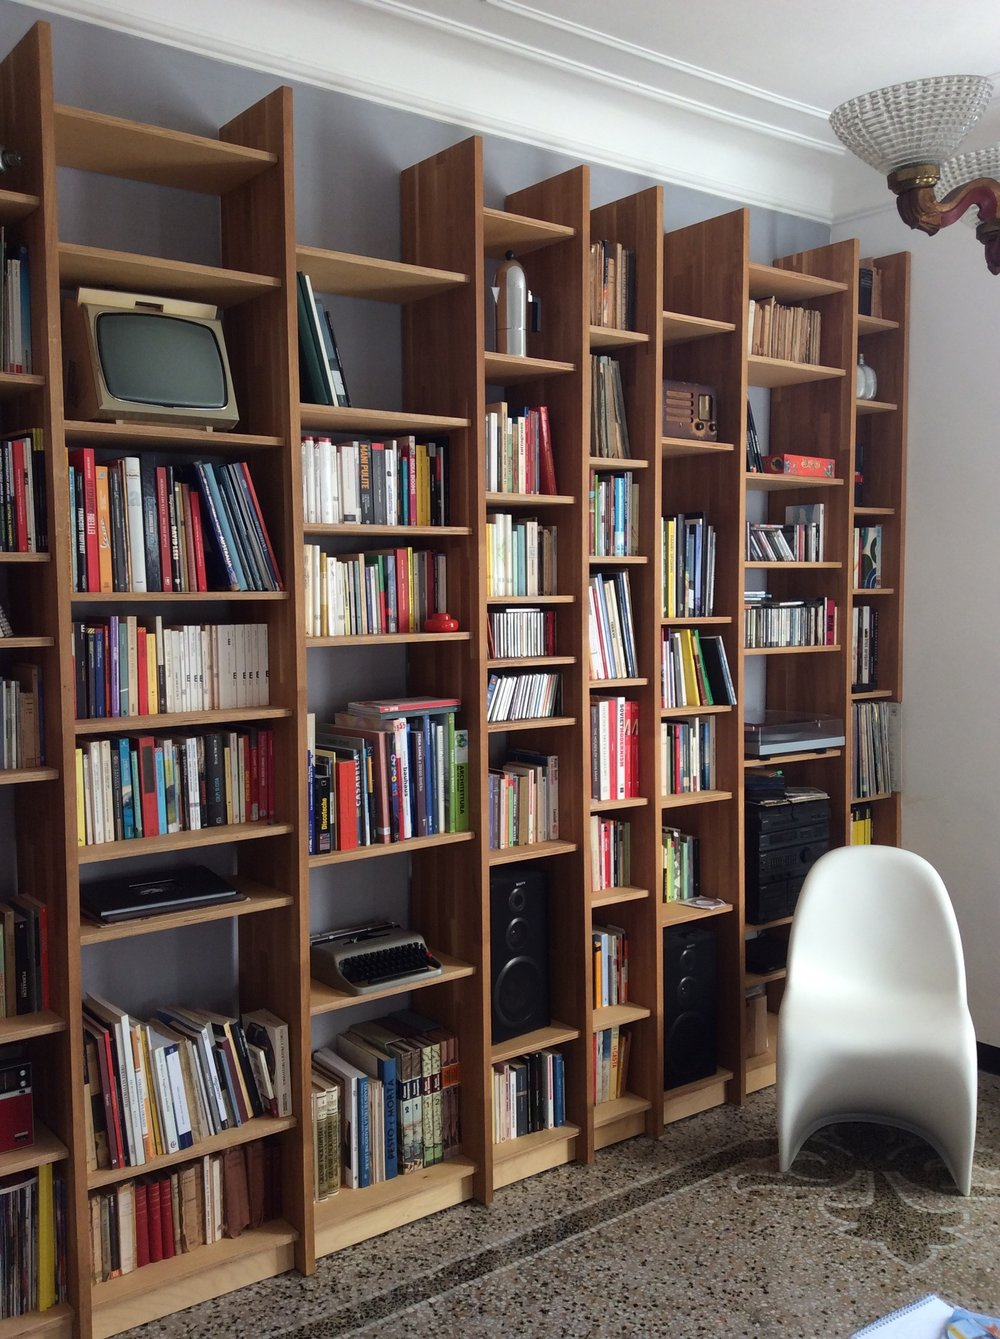 llabb_MM.L, bookshelf_2013